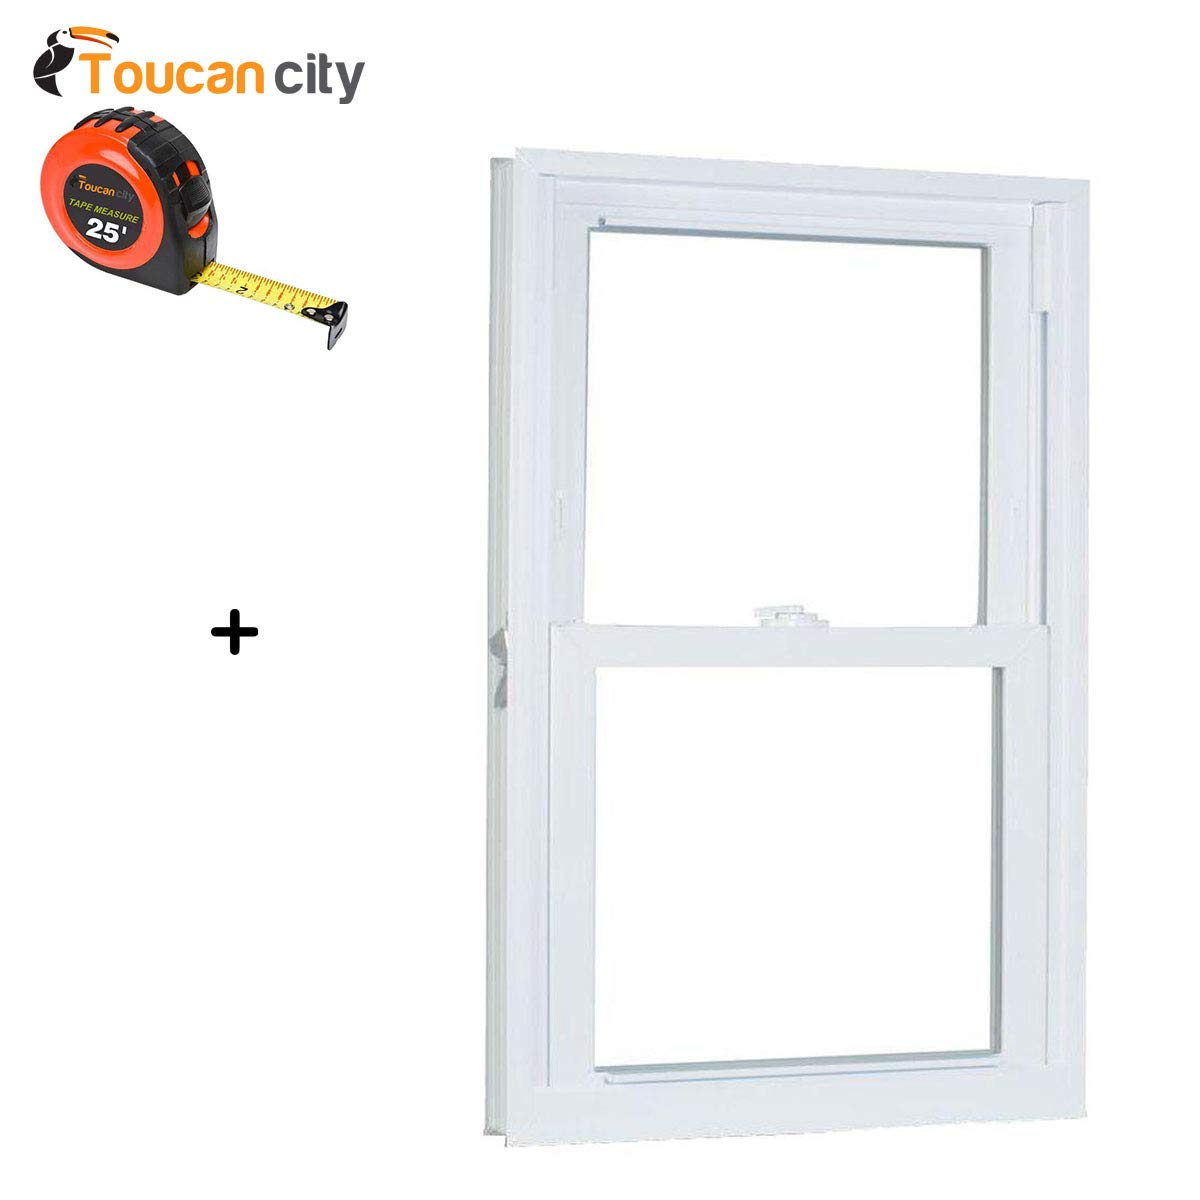 Toucan City Tape Measure and American Craftsman 23.75 in. x 35.25 in. 70 Series Pro Double Hung White Vinyl Window with Buck Frame 2436786